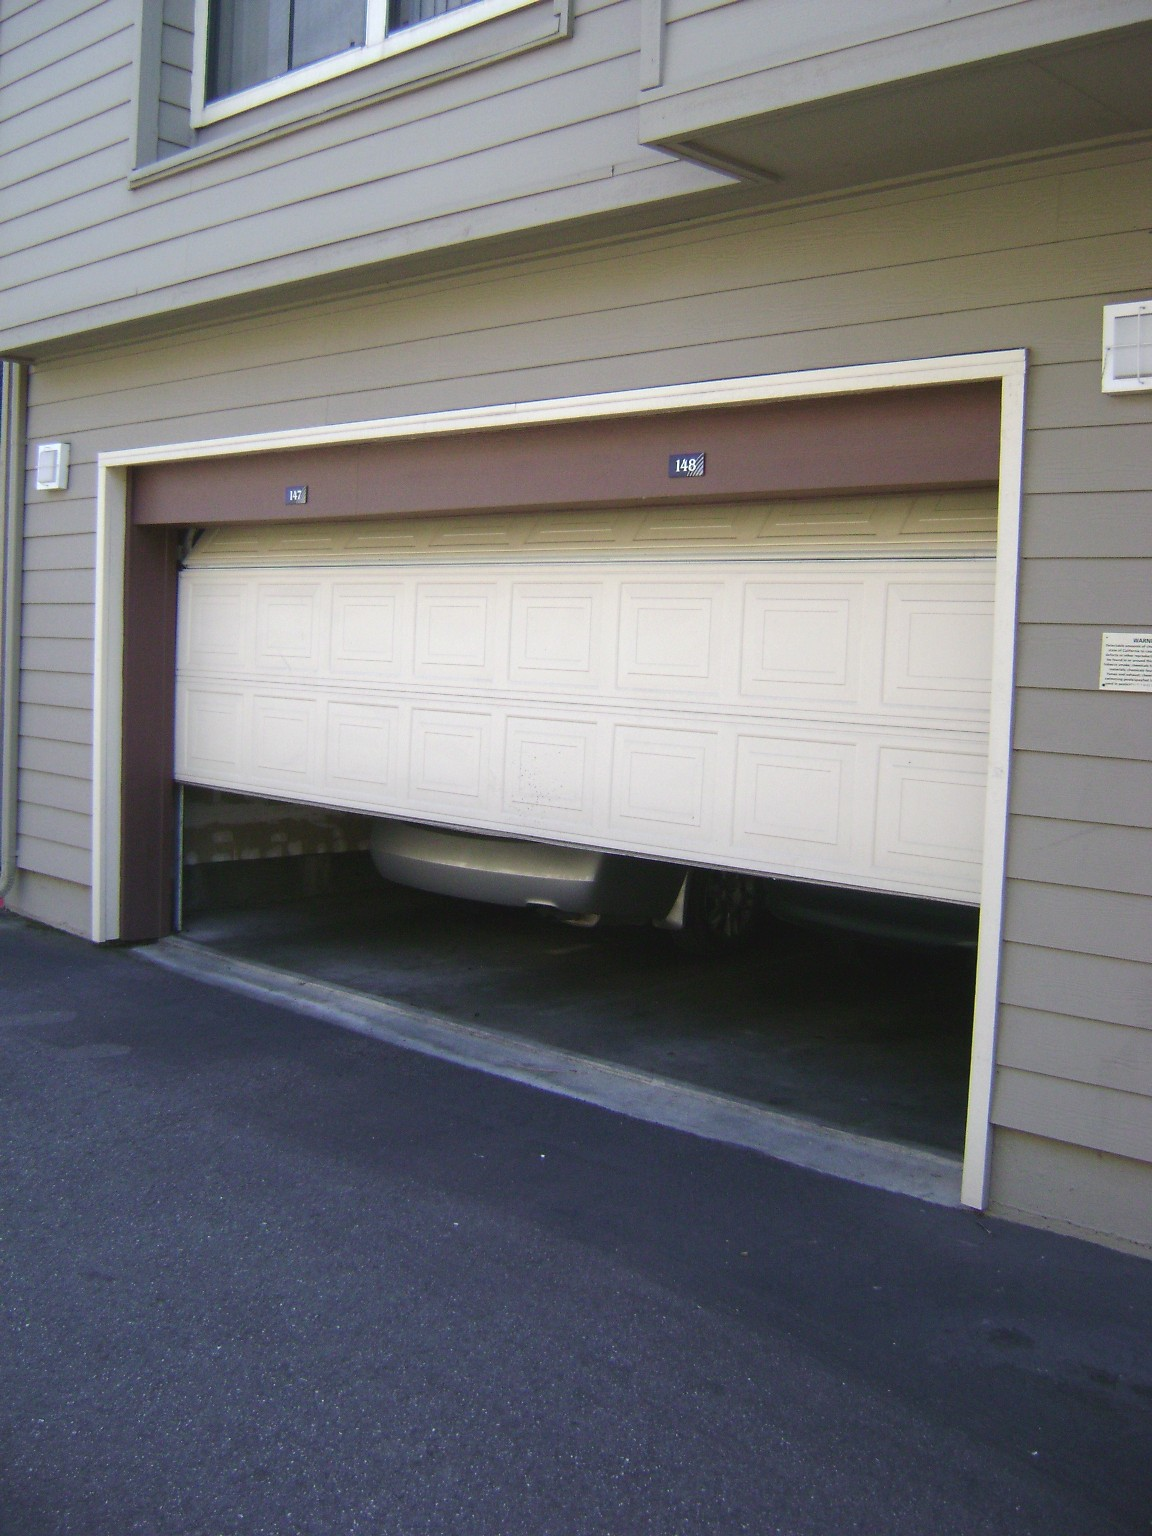 1536 #6A614A File:Garage Door Sliding Up.jpg Wikimedia Commons picture/photo Garages Doors 36391152